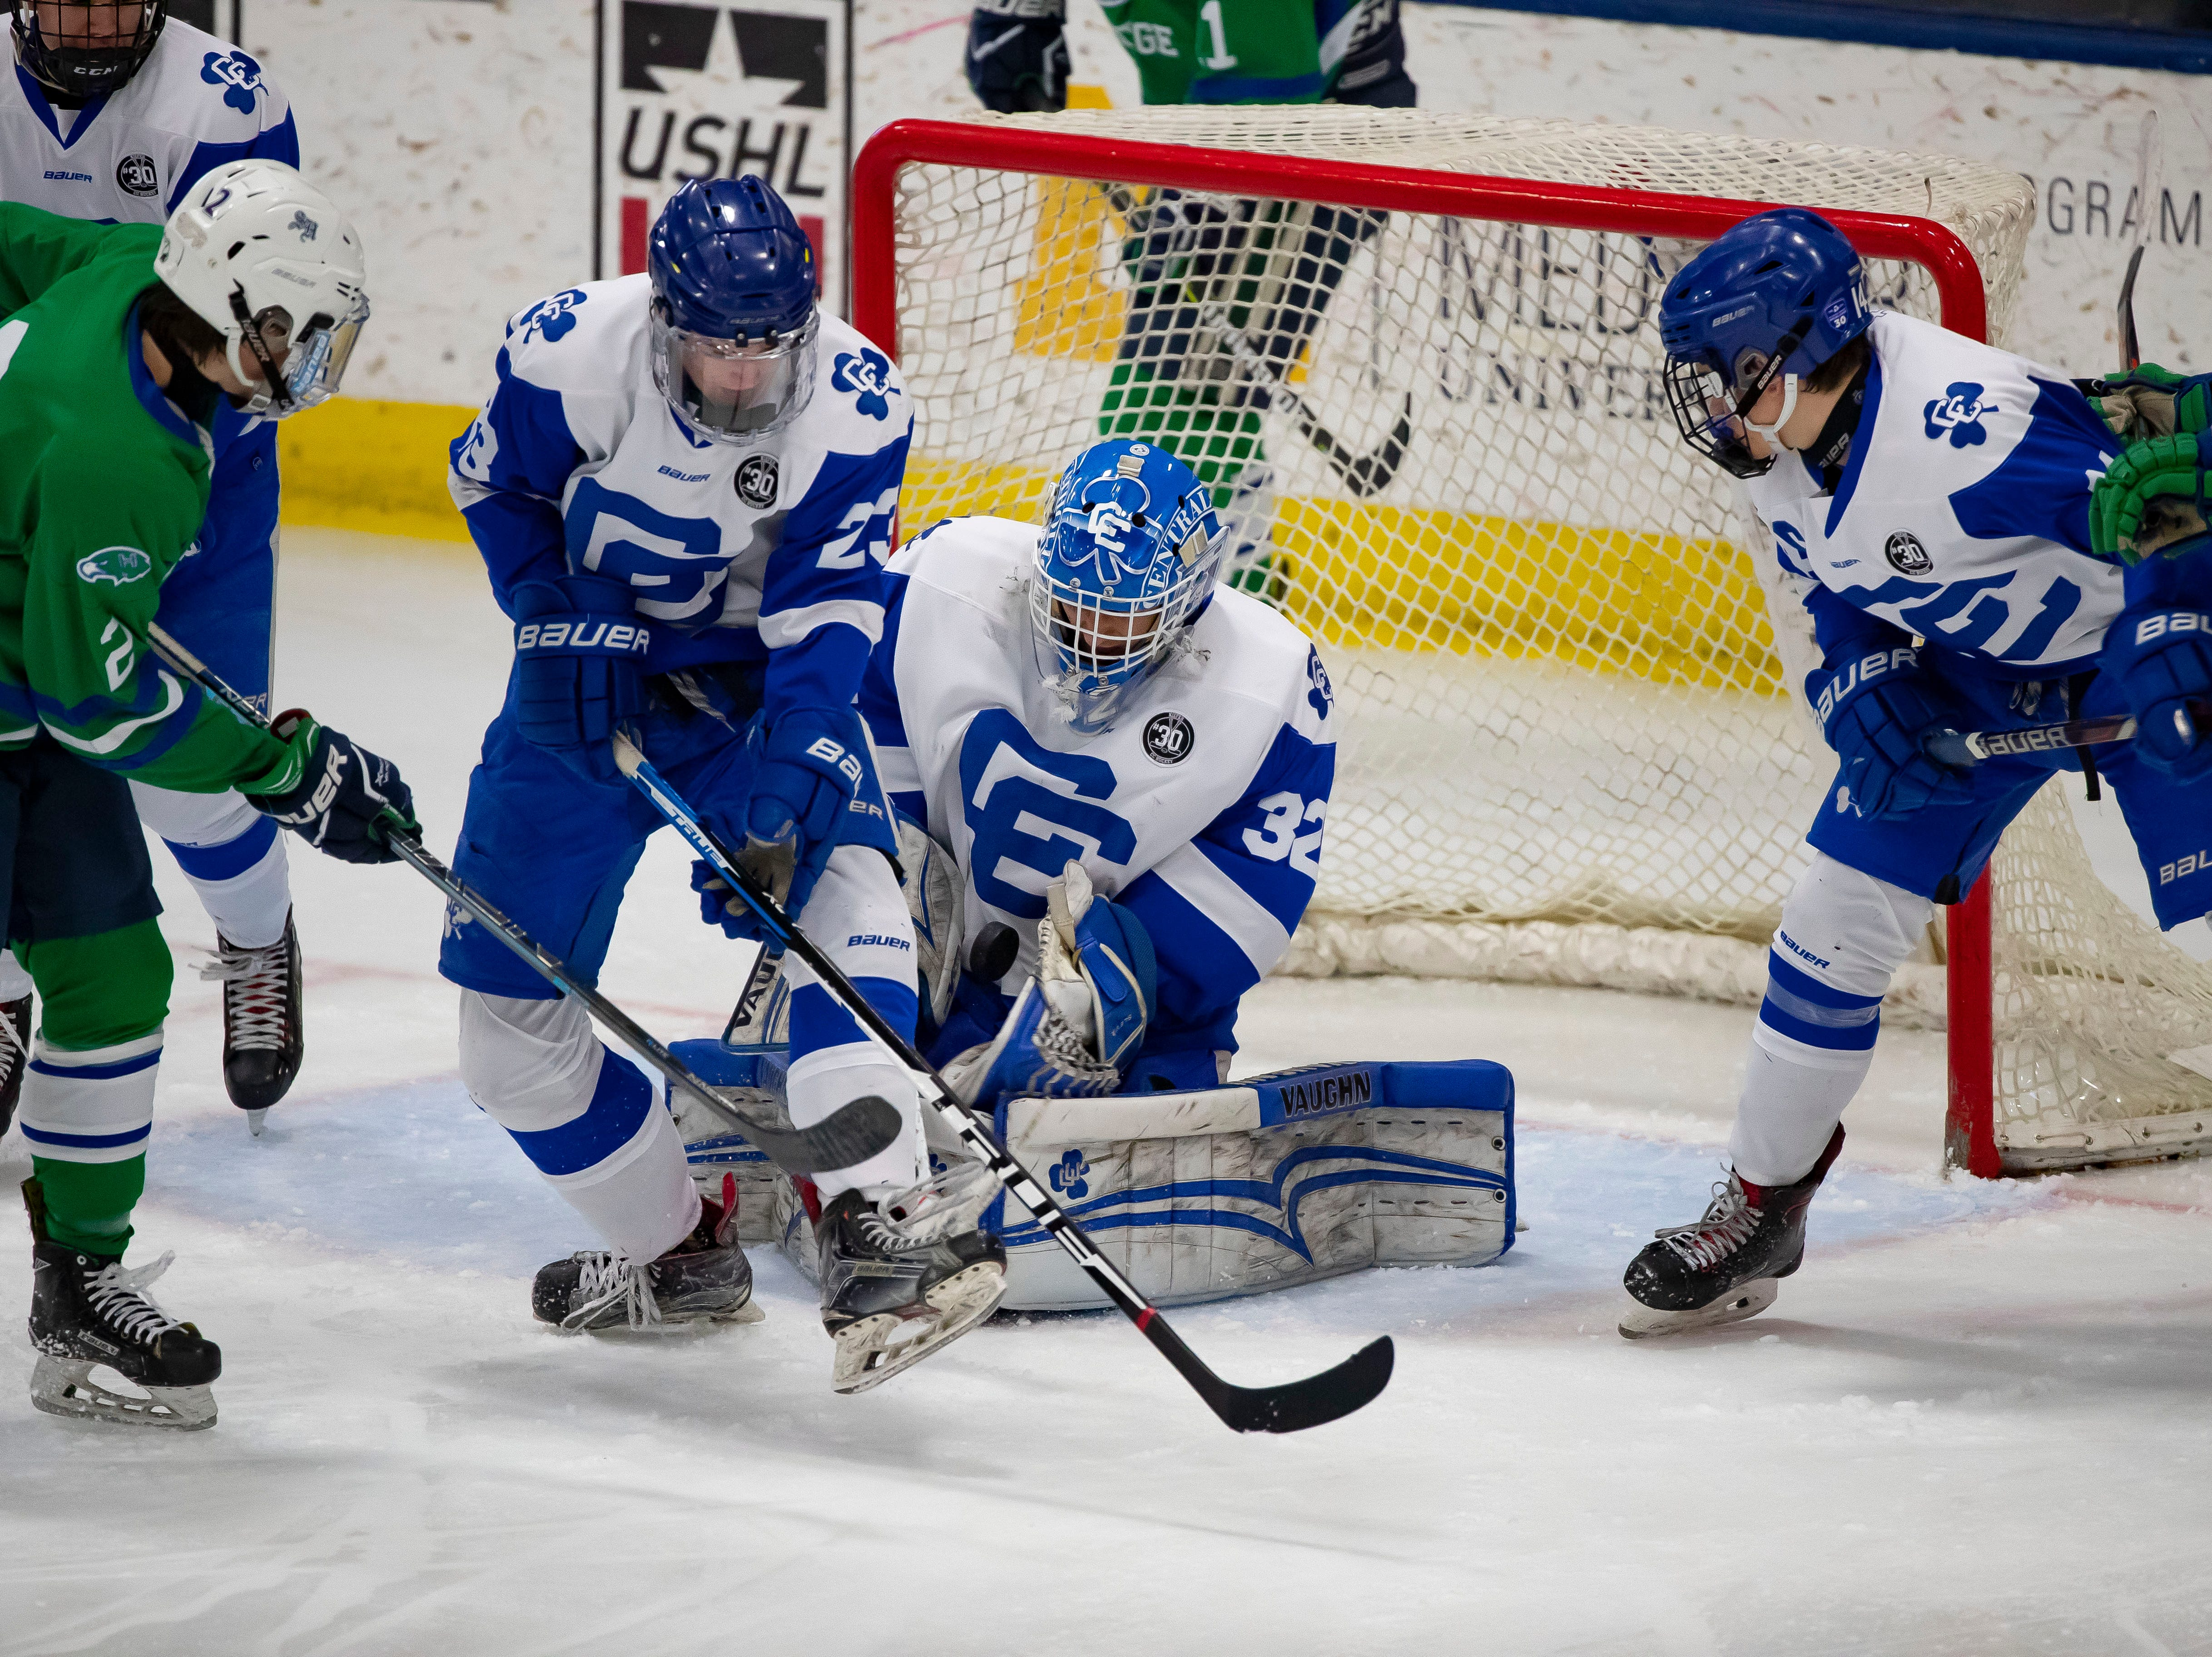 Goalie Stephen Steva (32) of Catholic Central makes a save in the first period against Saginaw Heritage.